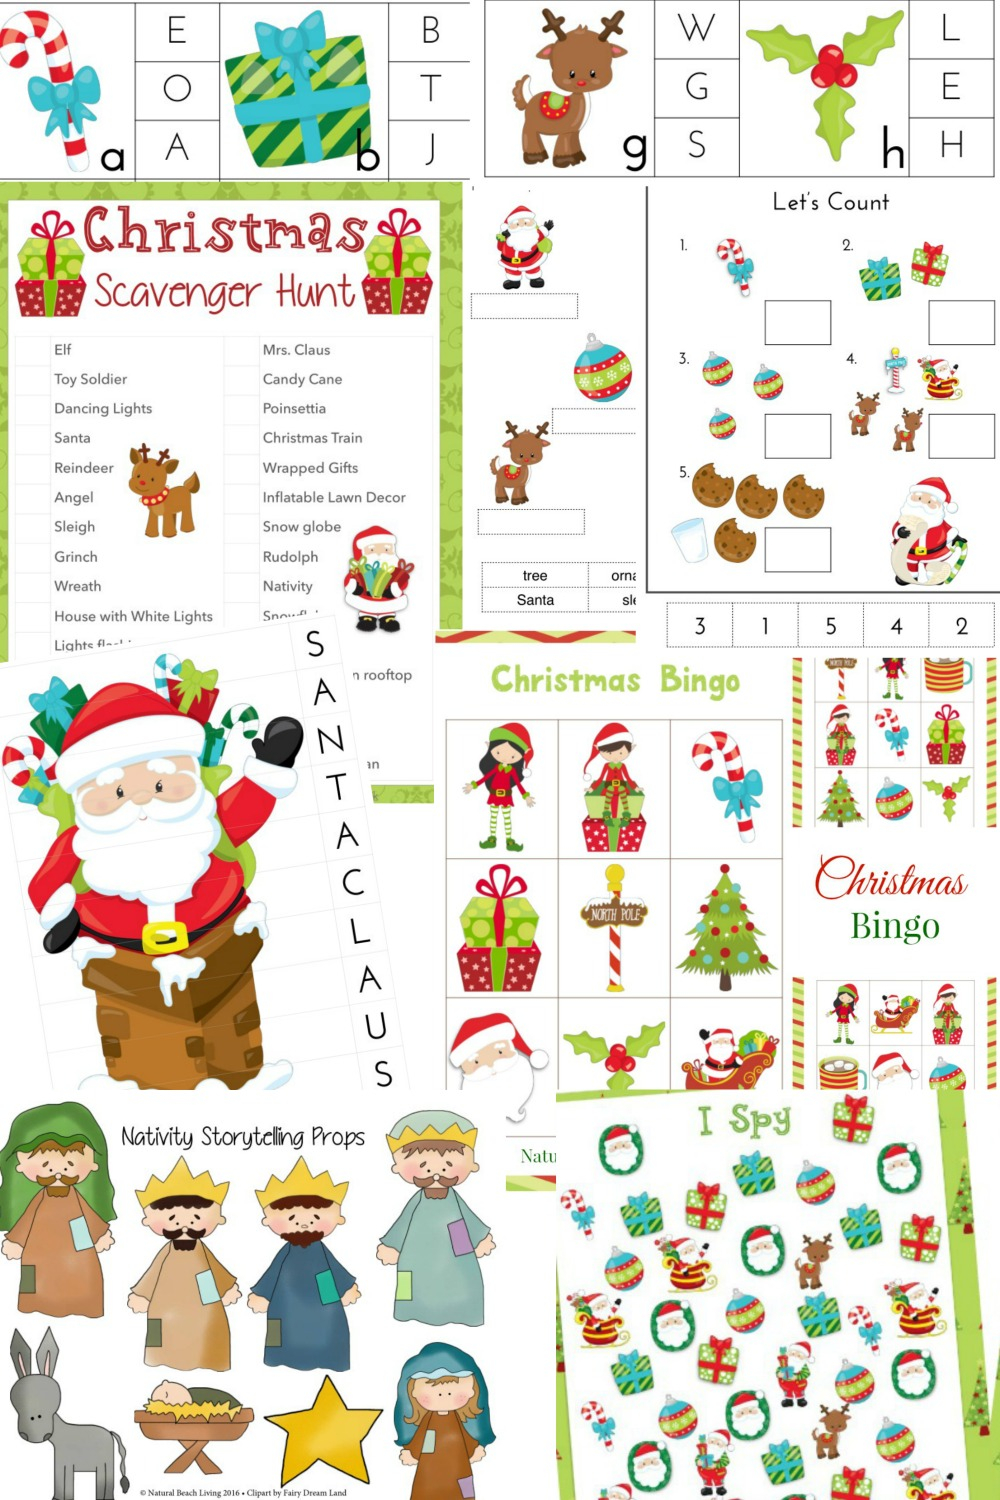 The Best Christmas Books For Kids - Natural Beach Living